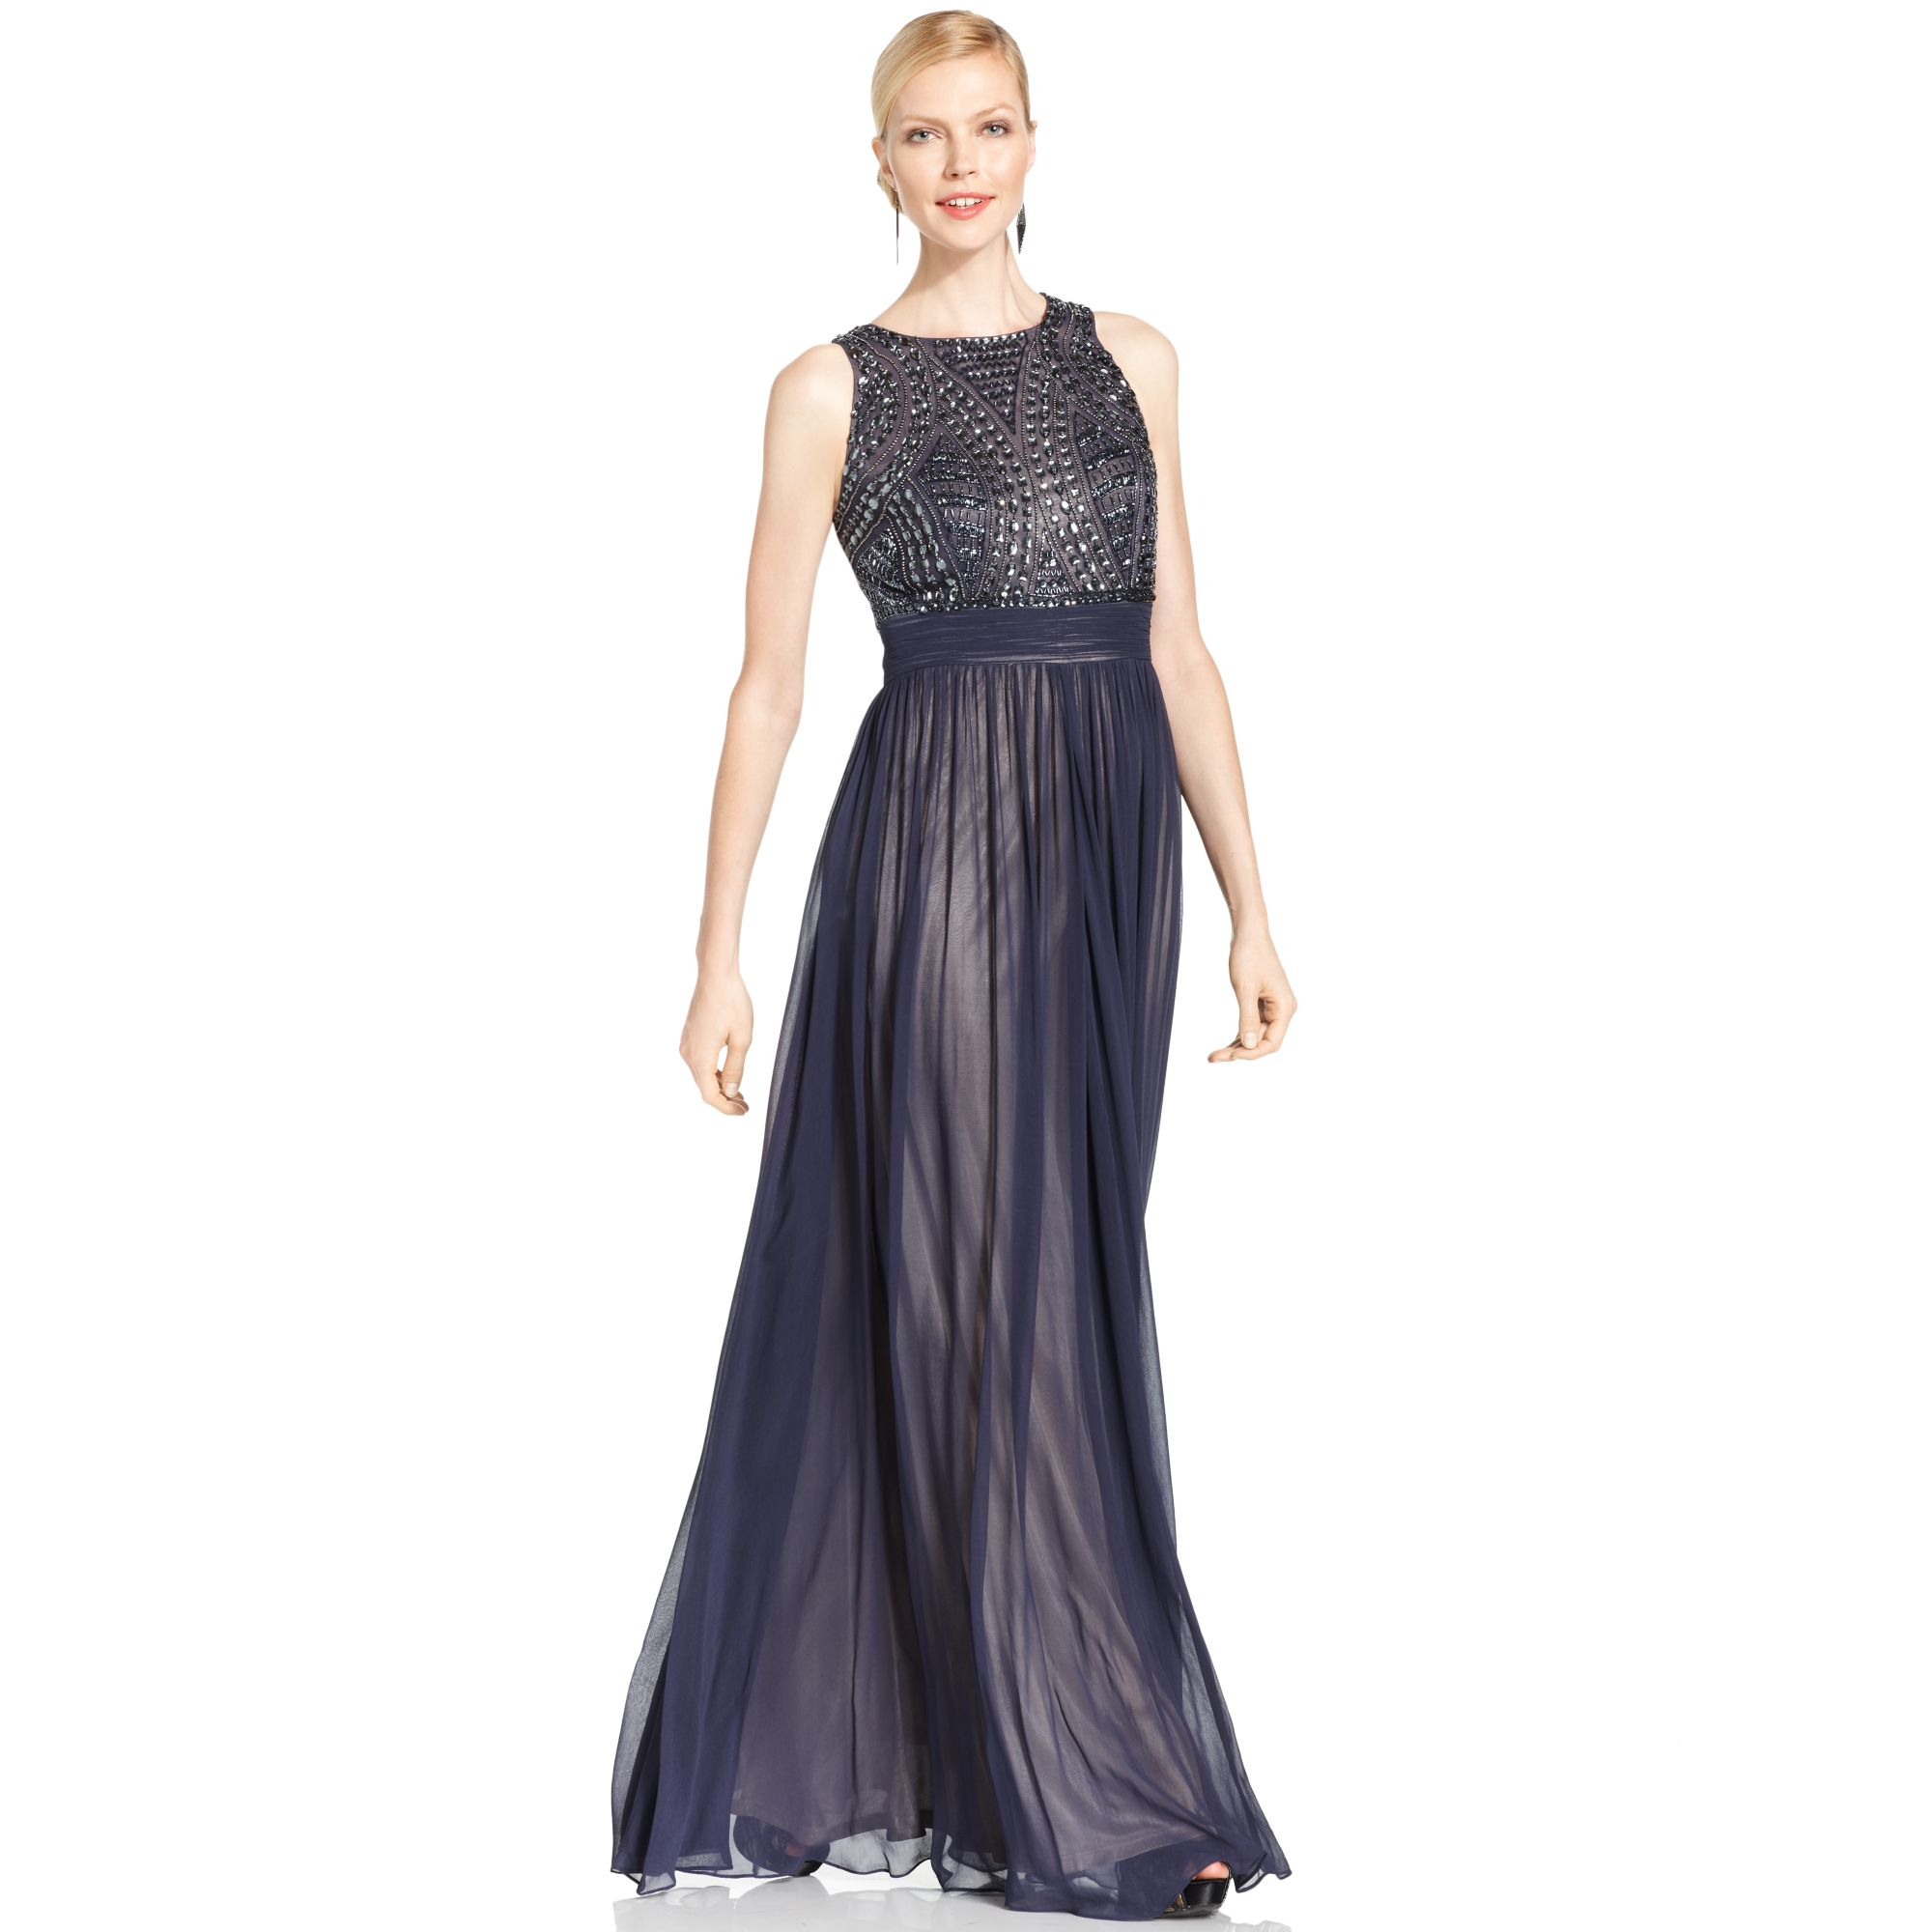 Lyst - Js Collections Sleeveless Beaded Empirewaist Gown in Blue